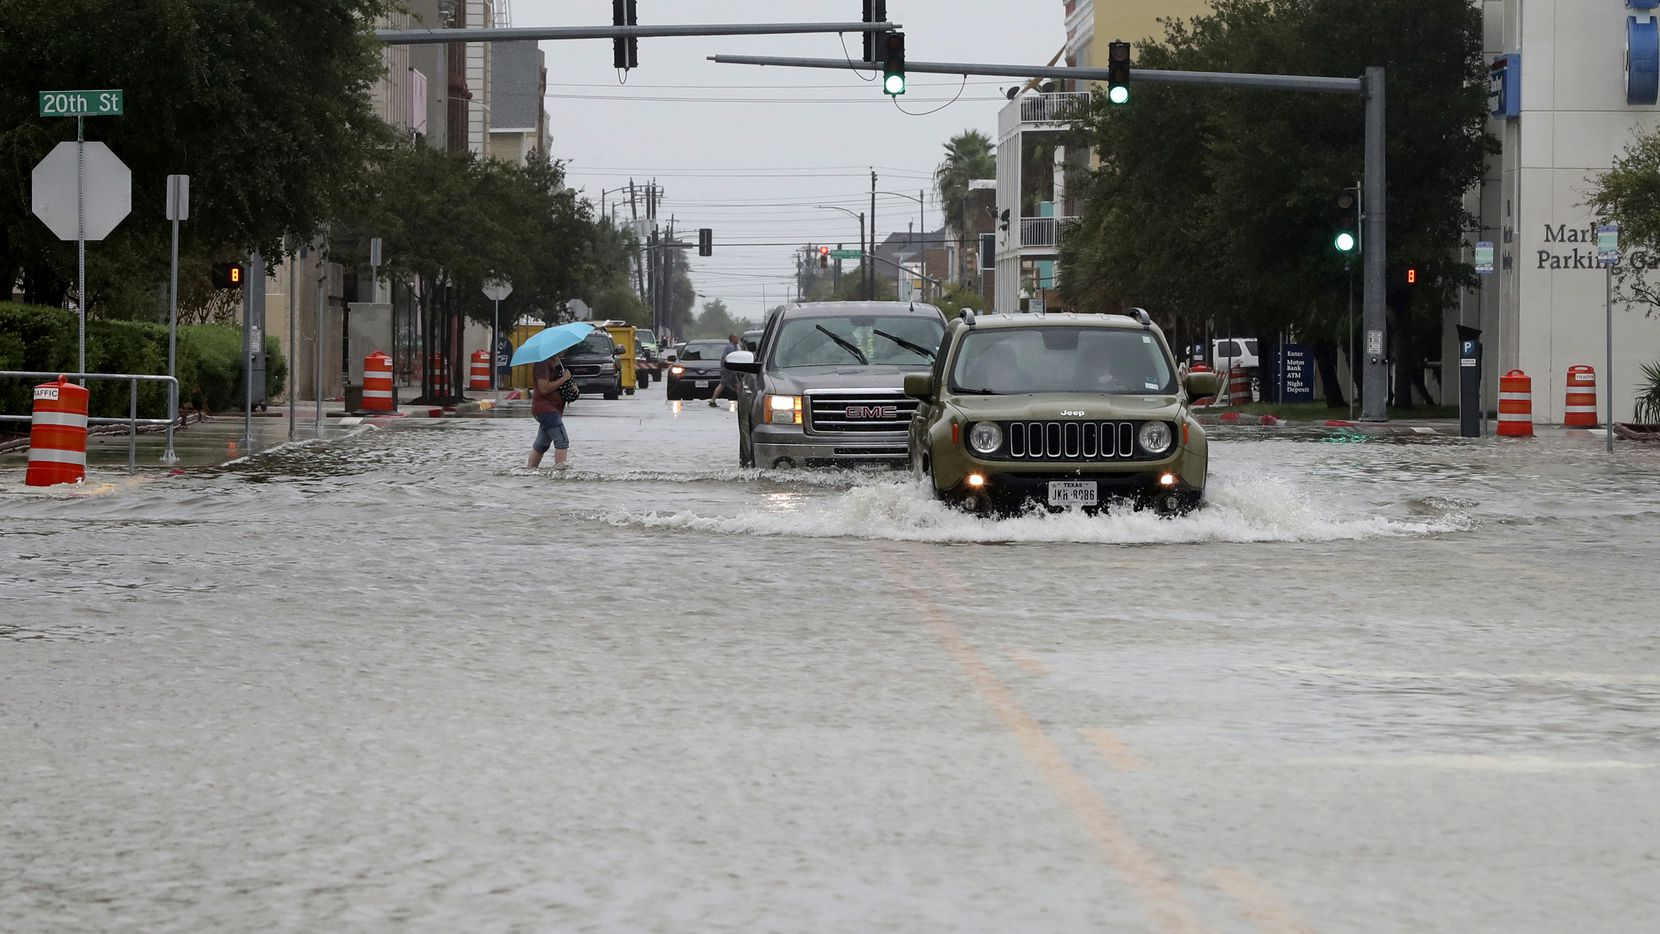 Cars make their way through high water at 20th and Market streets in Galveston on Friday.